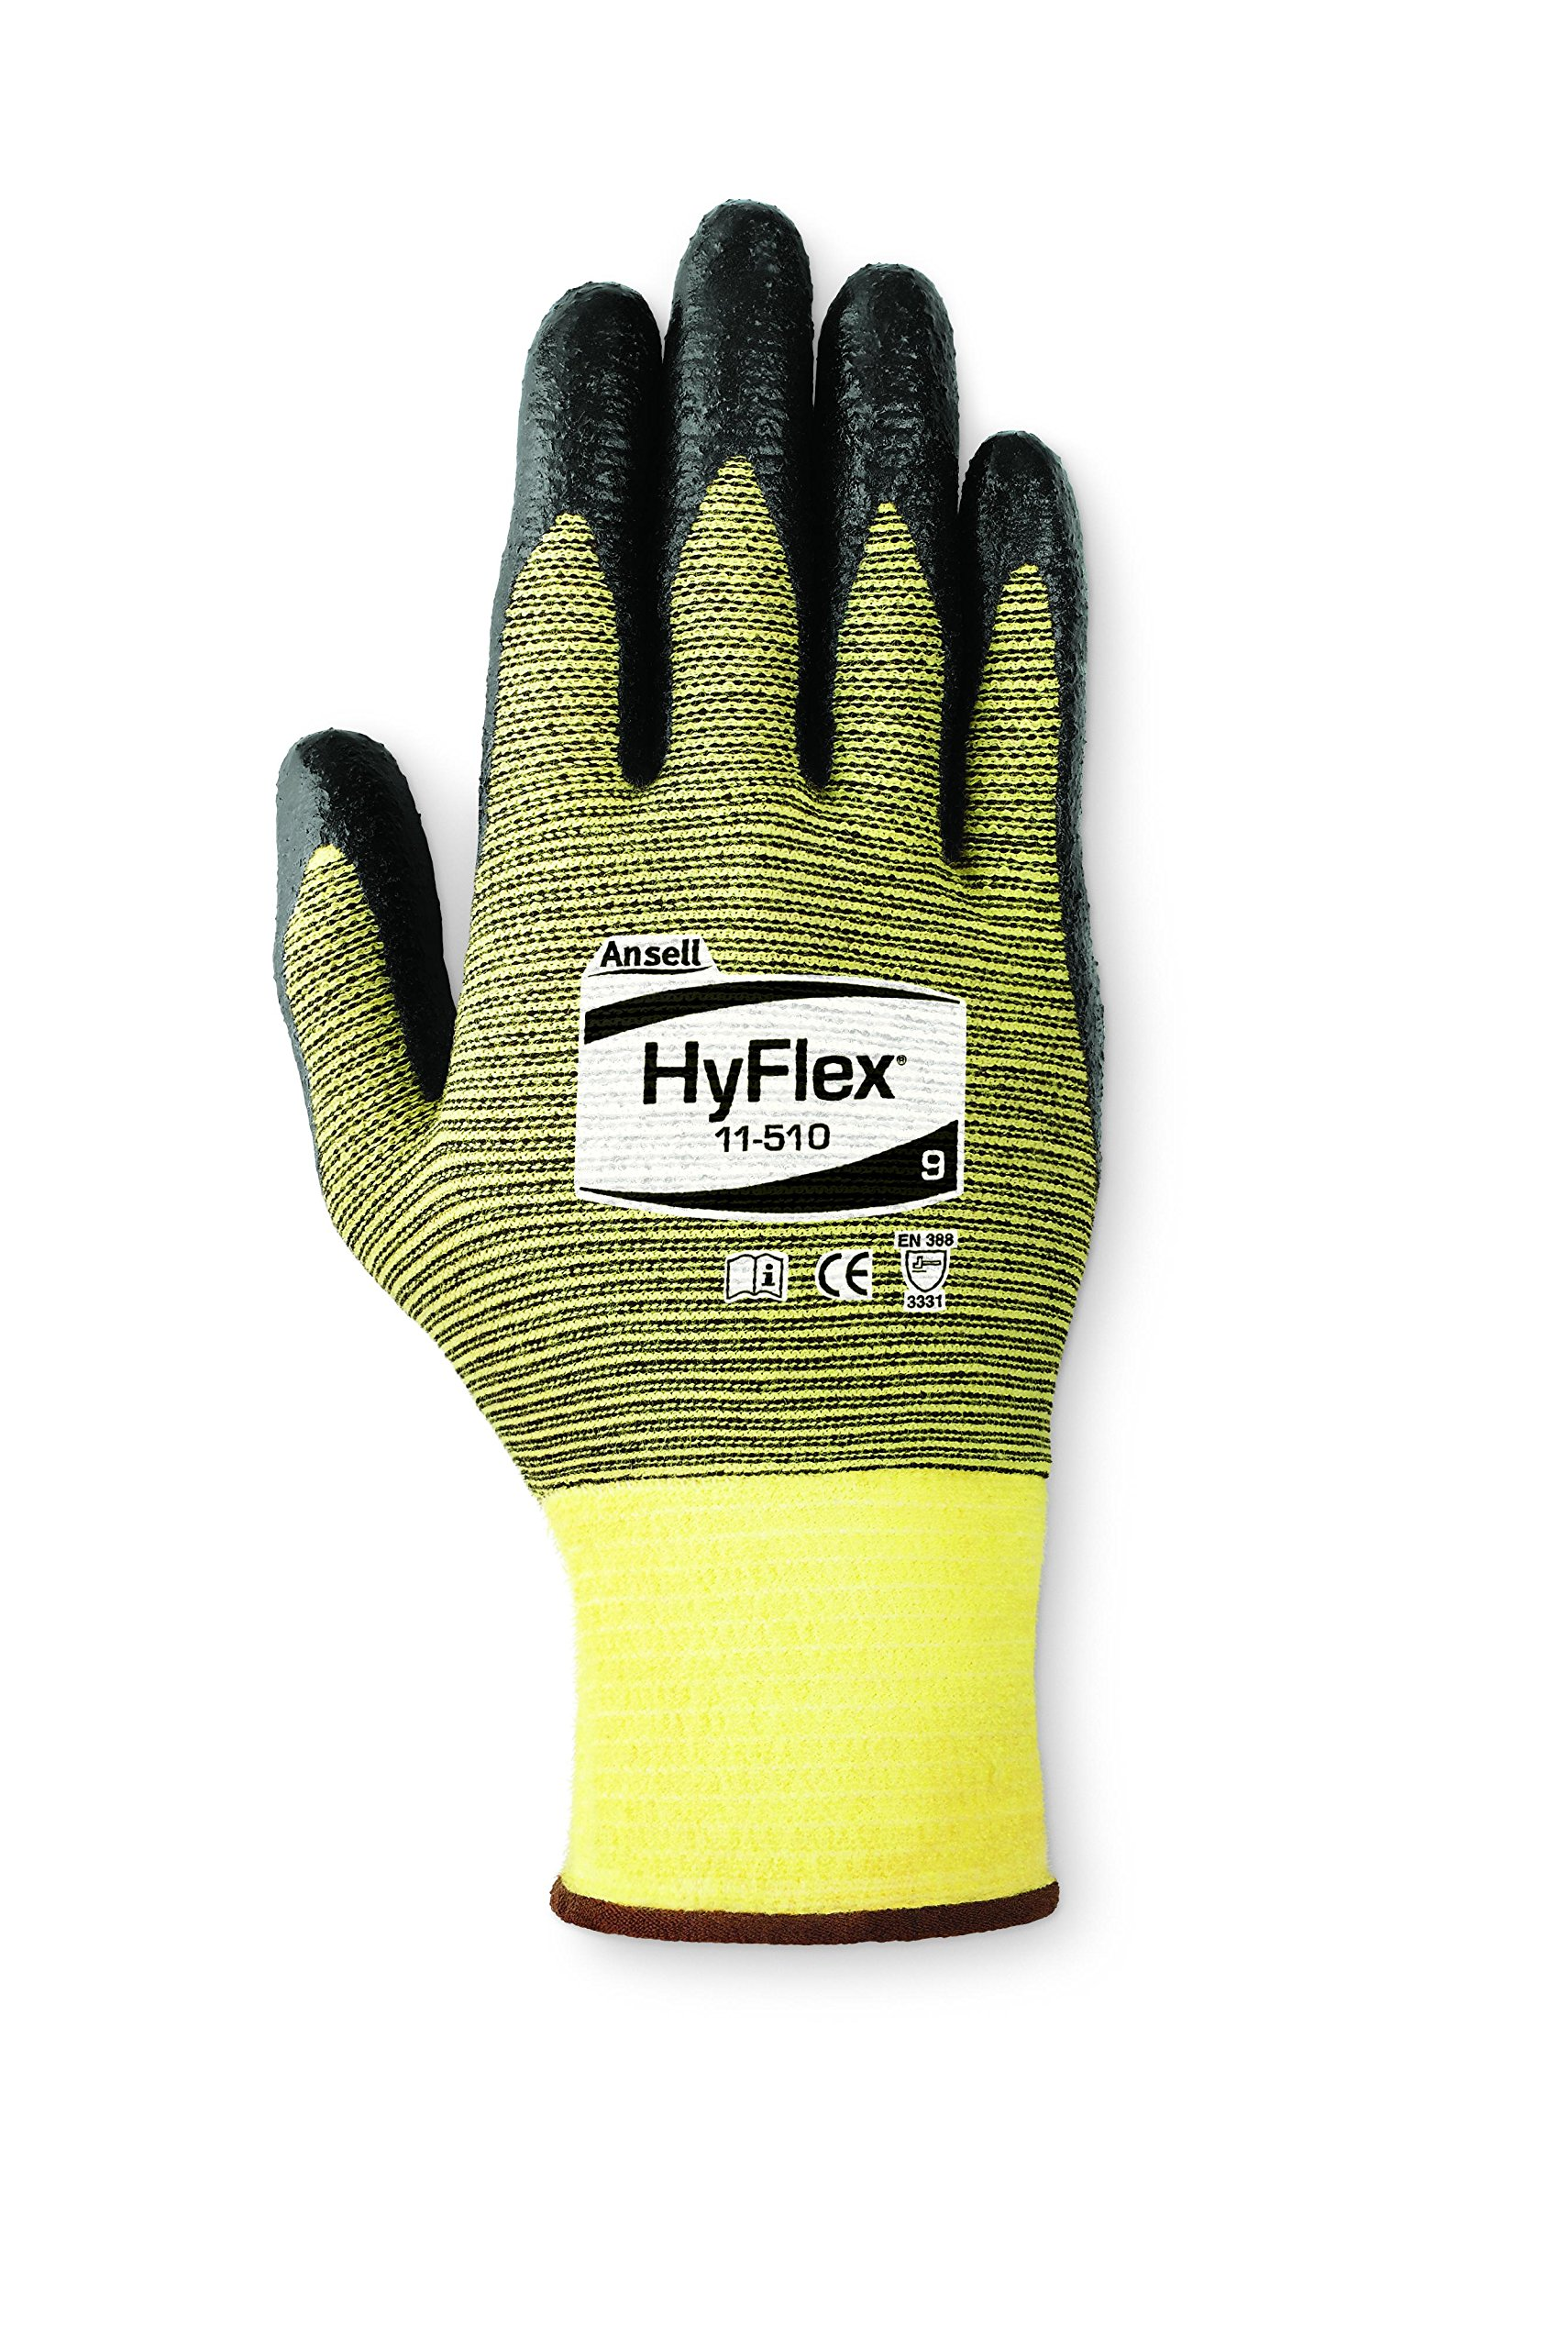 Ansell 115108 HyFlex 11-510 Foam Nitrile Palm Coated Yellow Kevlar Blended Protective Gloves, 10'' Length, 5'' Width, 0.46'' Height, Size 8, Black (Pack of 12) by Ansell (Image #1)